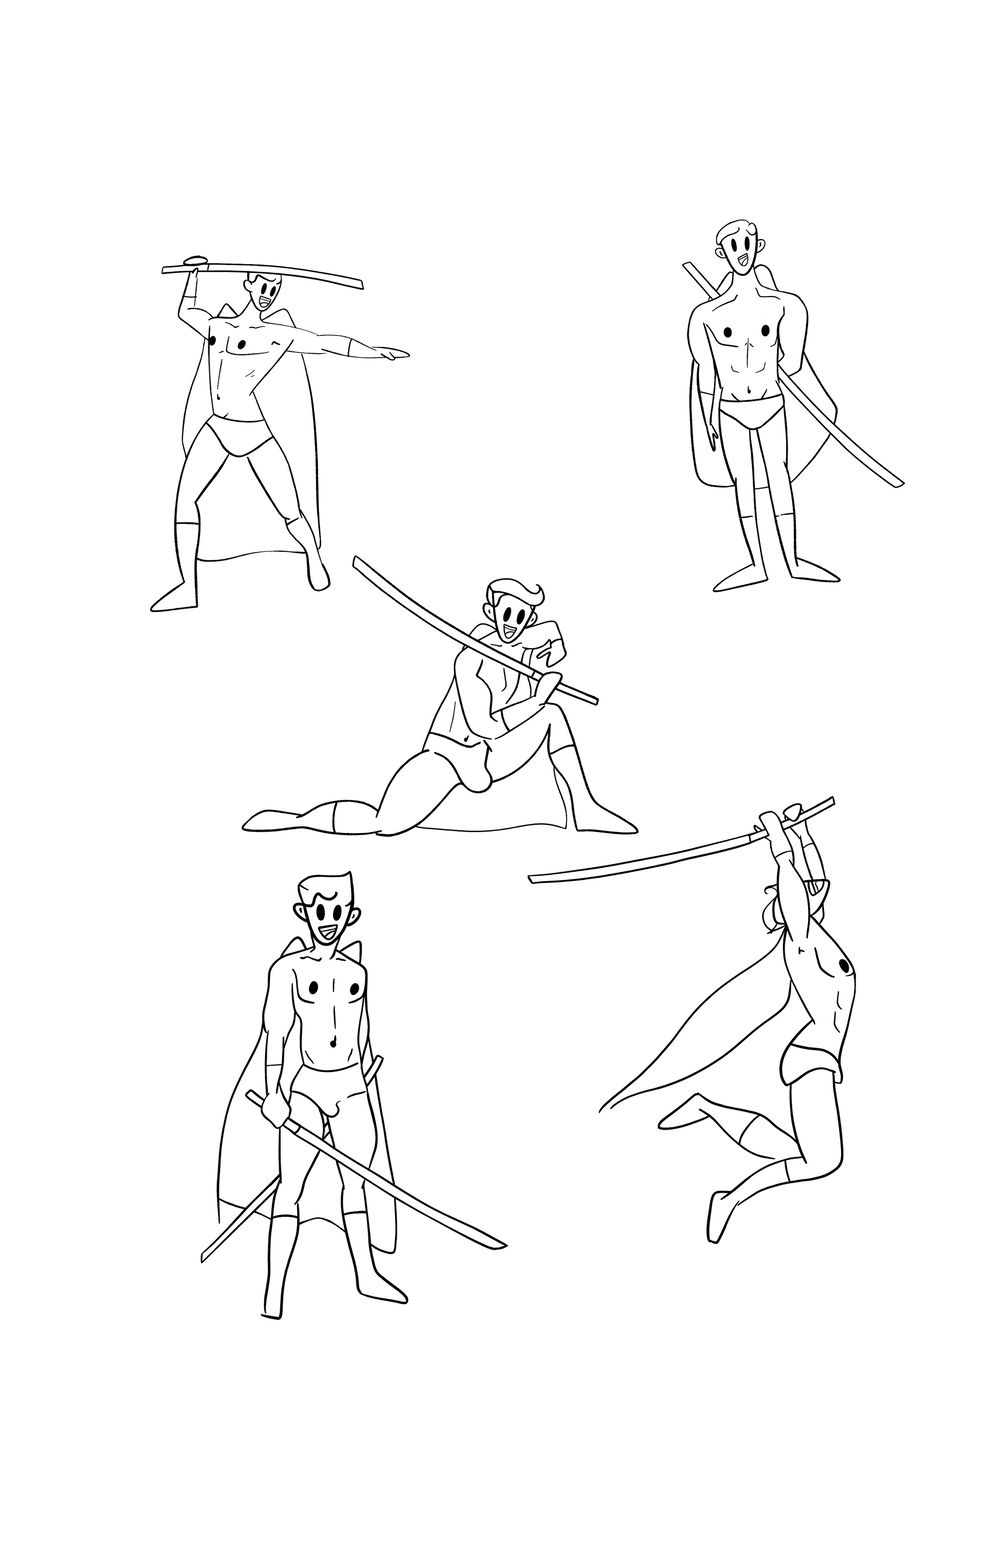 Christopher Jeske - Character poses - image 6 - student project